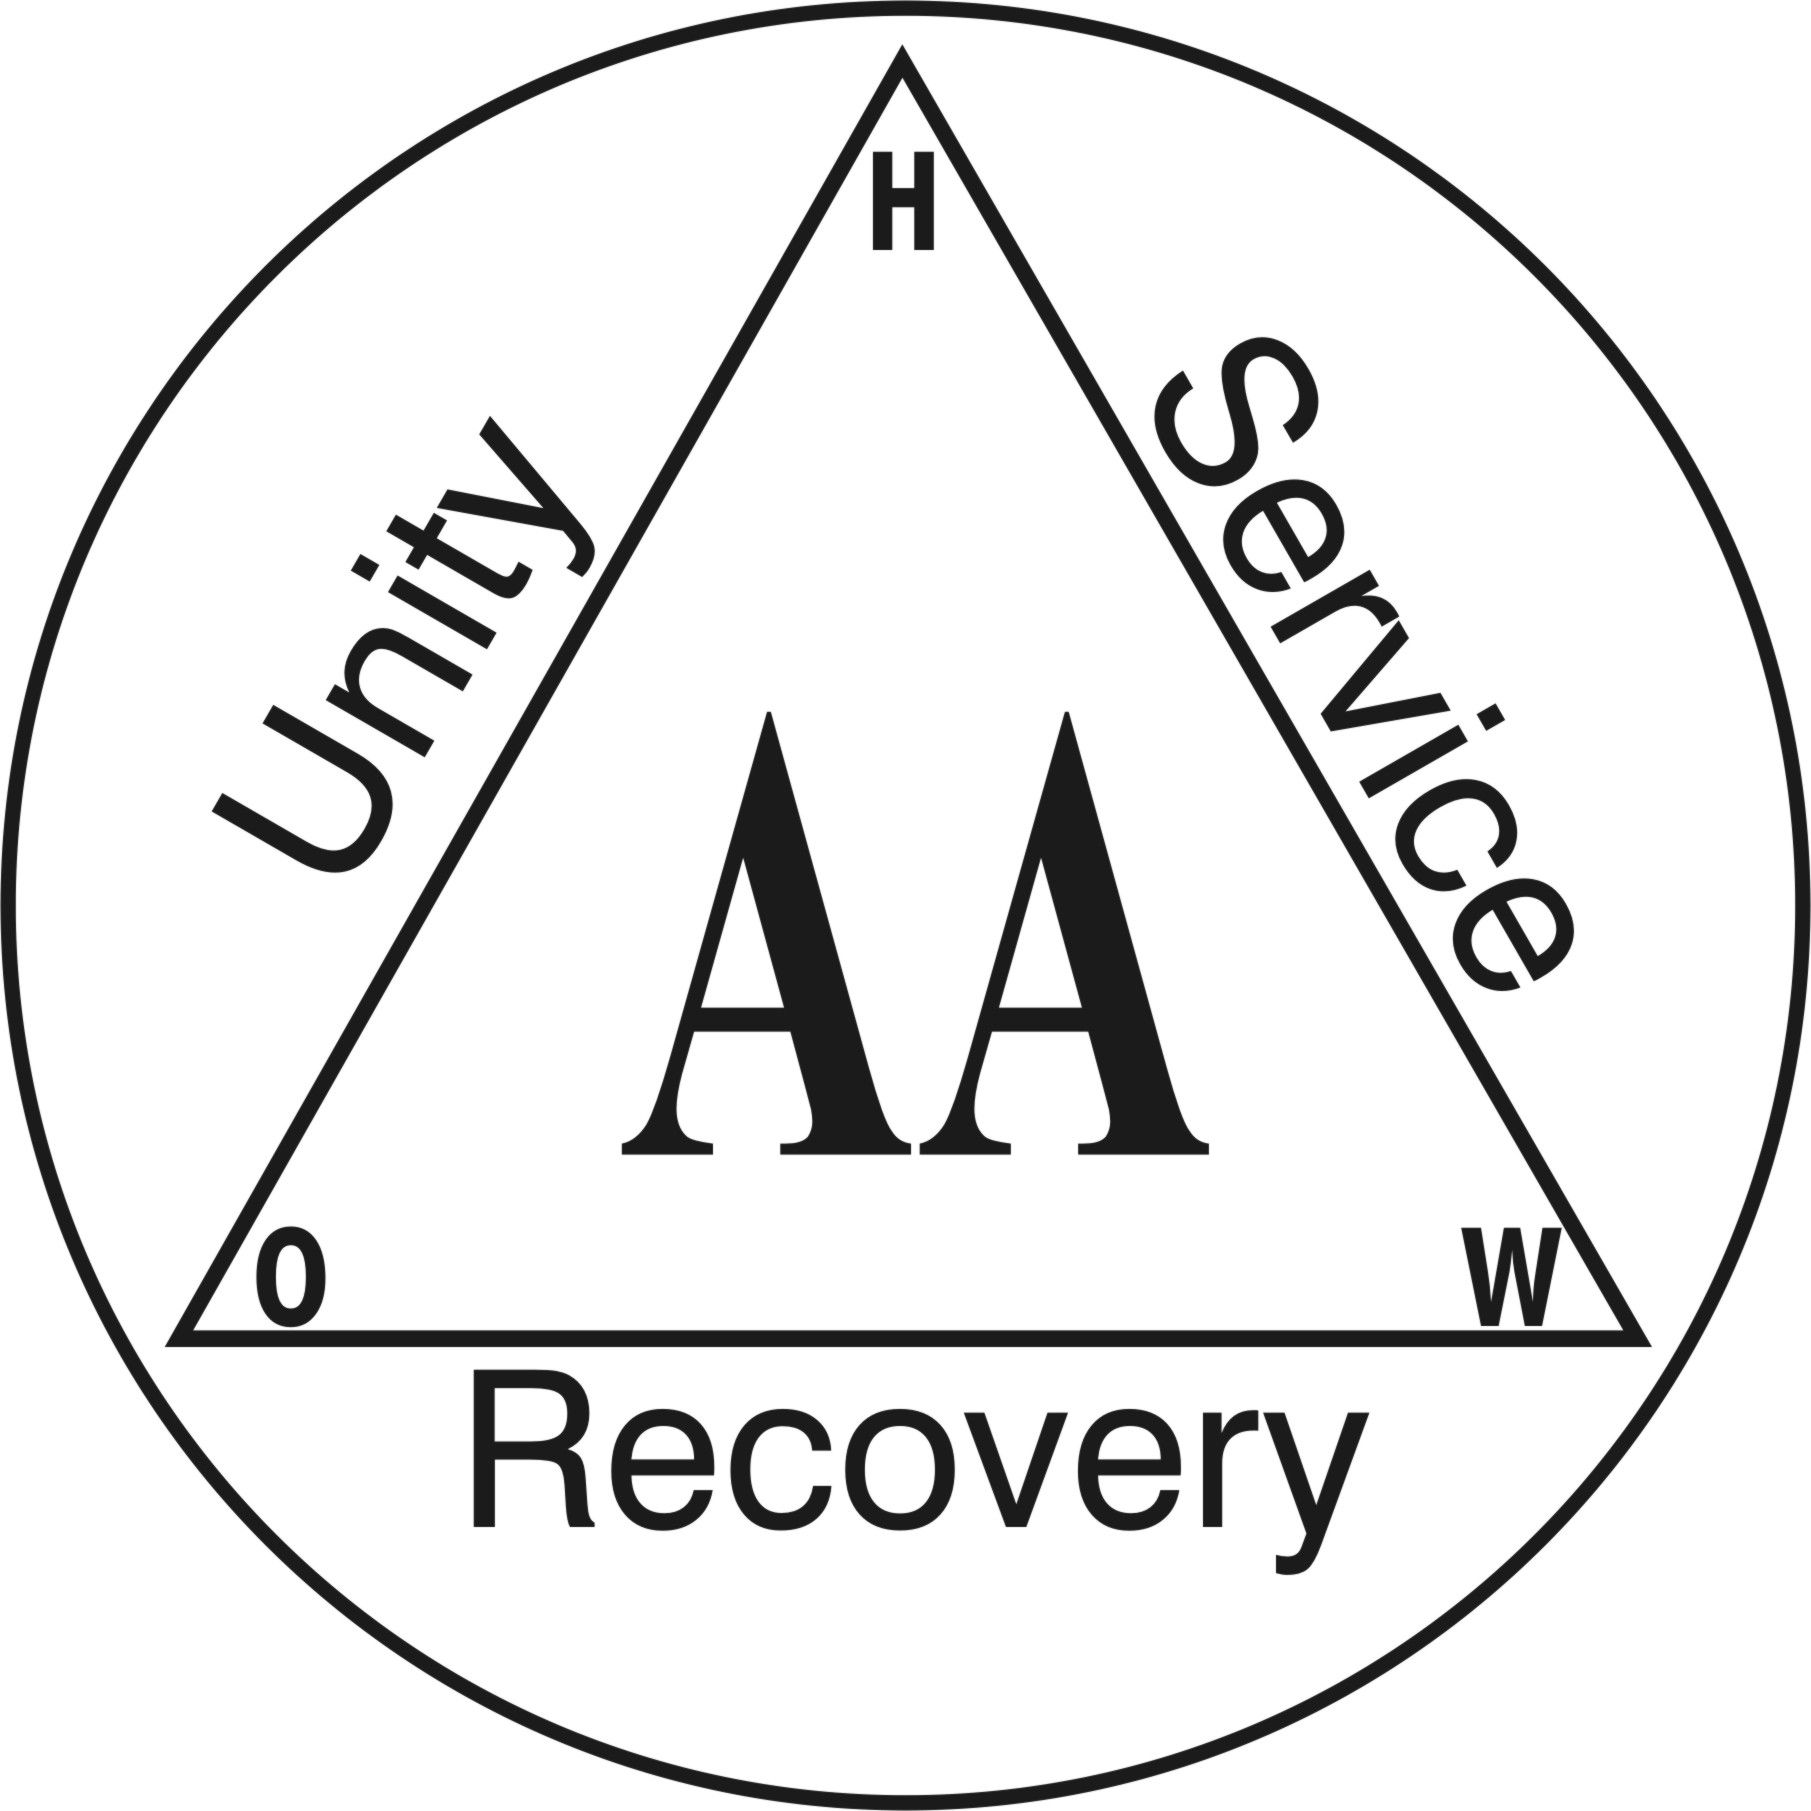 Symbol for sobriety images symbol and sign ideas pin by ralph mandelbaum on vision board pinterest recovery aa buycottarizona buycottarizona